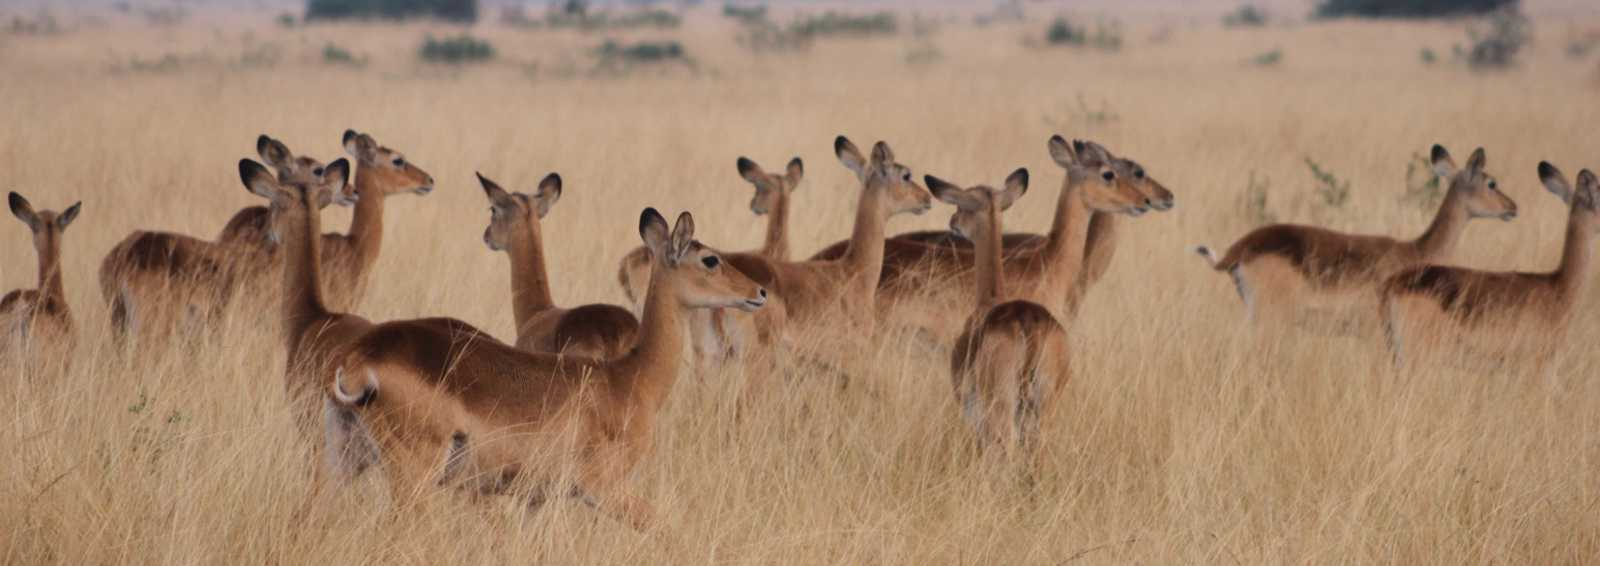 Part of a herd of kob in Queen Elizabeth National Park, Uganda